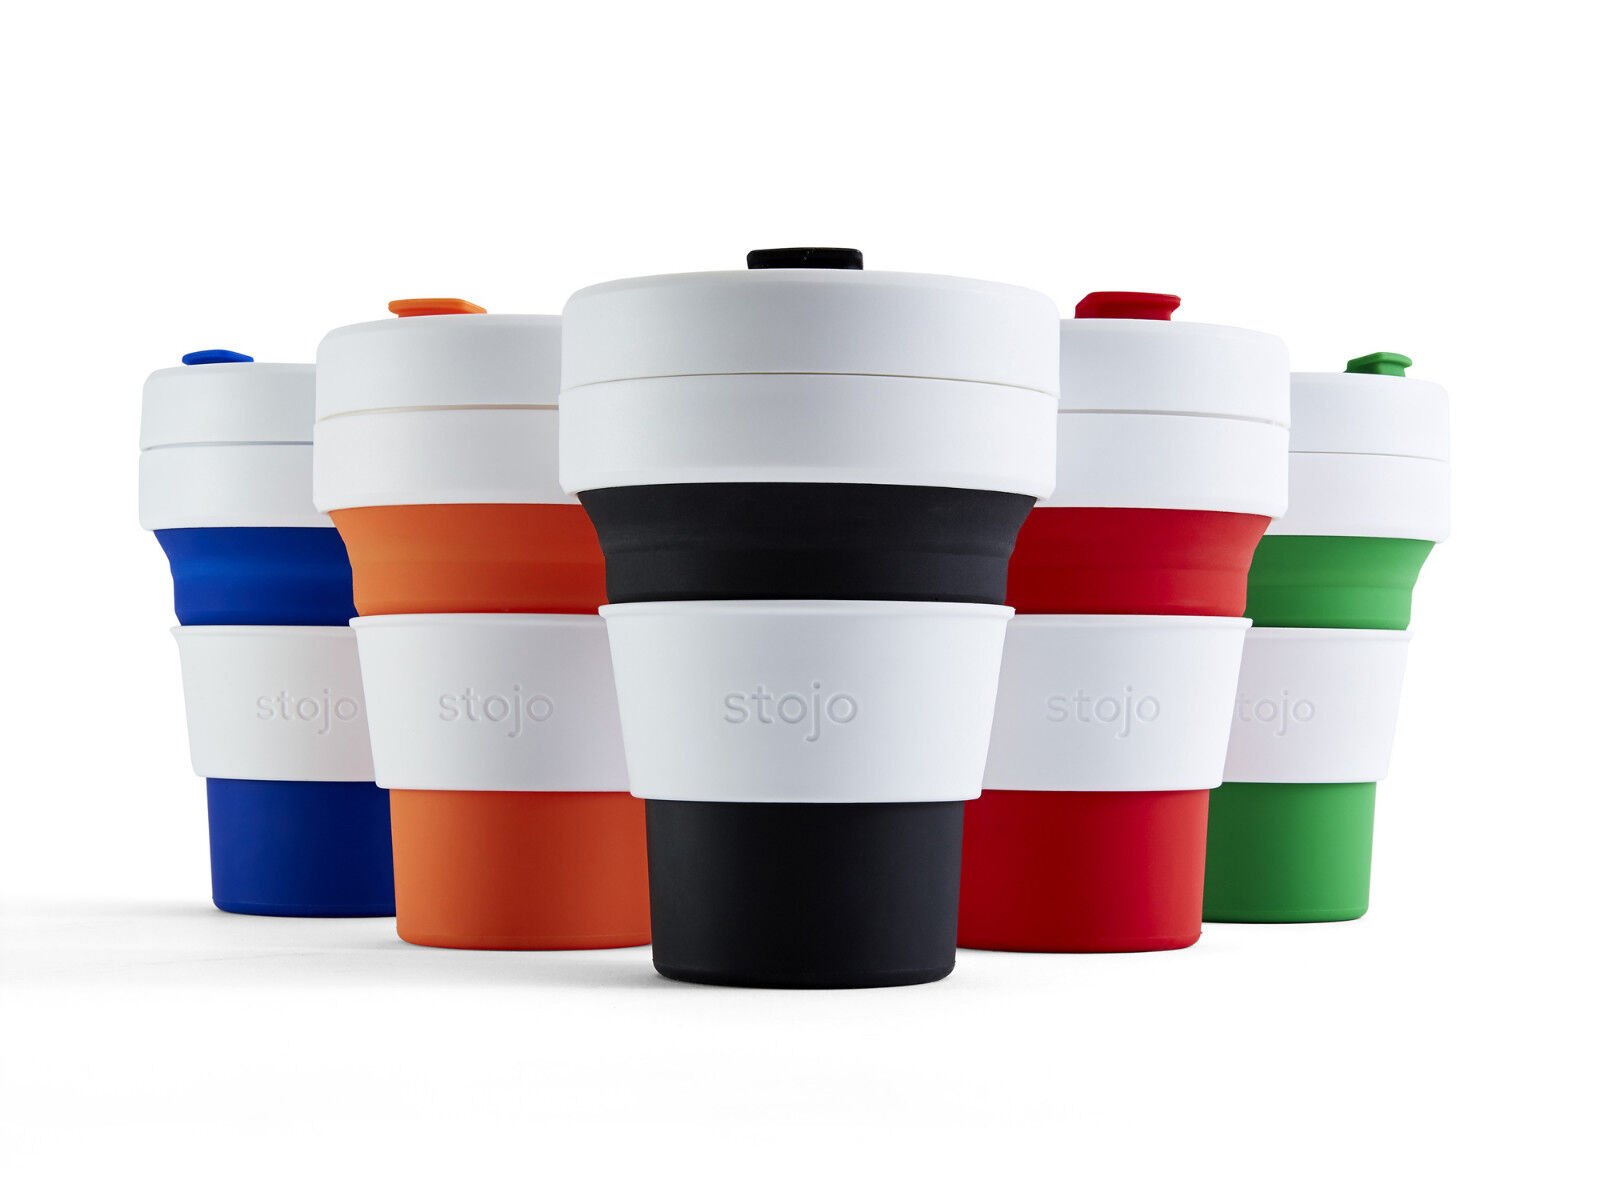 Stojo Pocket Cup Red 340ml 3 Pack